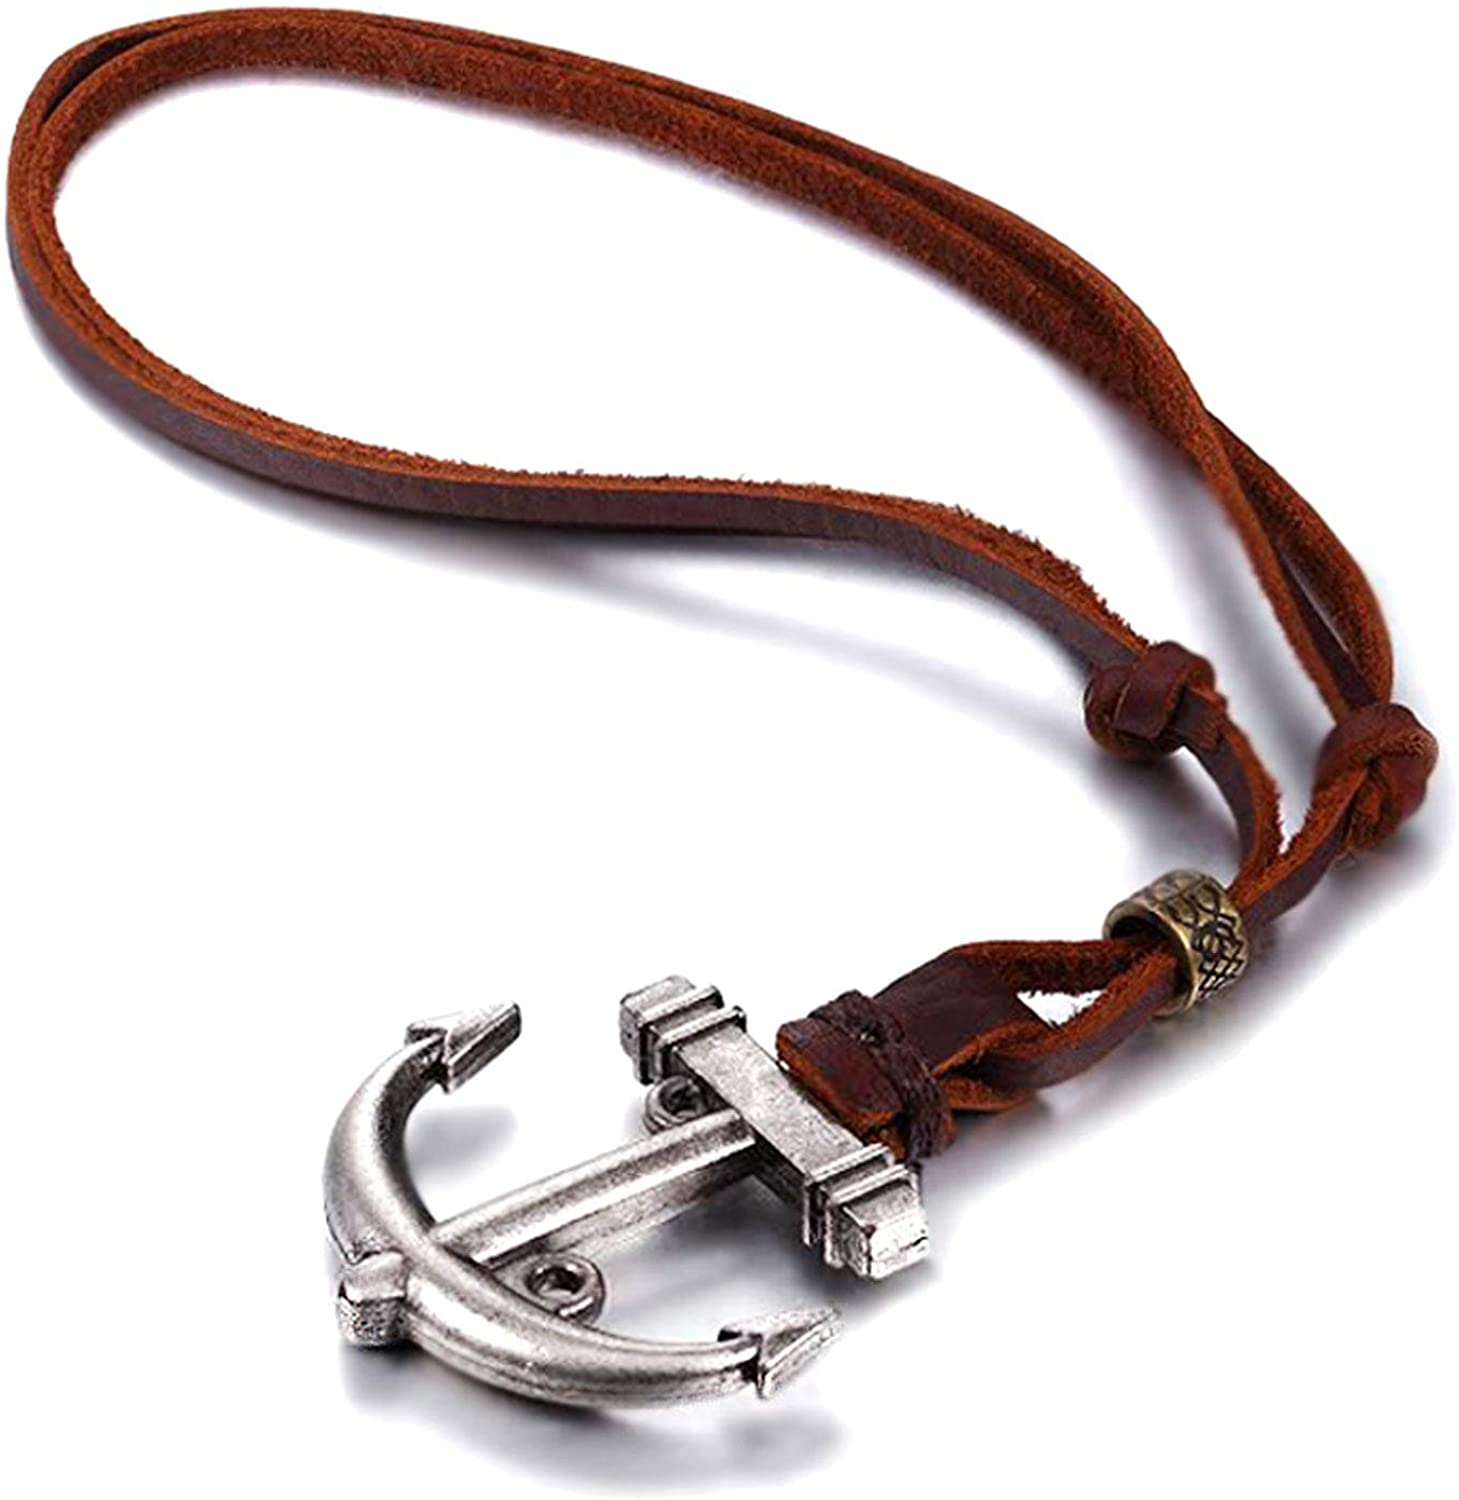 BodyJ4You Pendant Necklace for Men Alloy Vinatge Leather Chain Adjustable